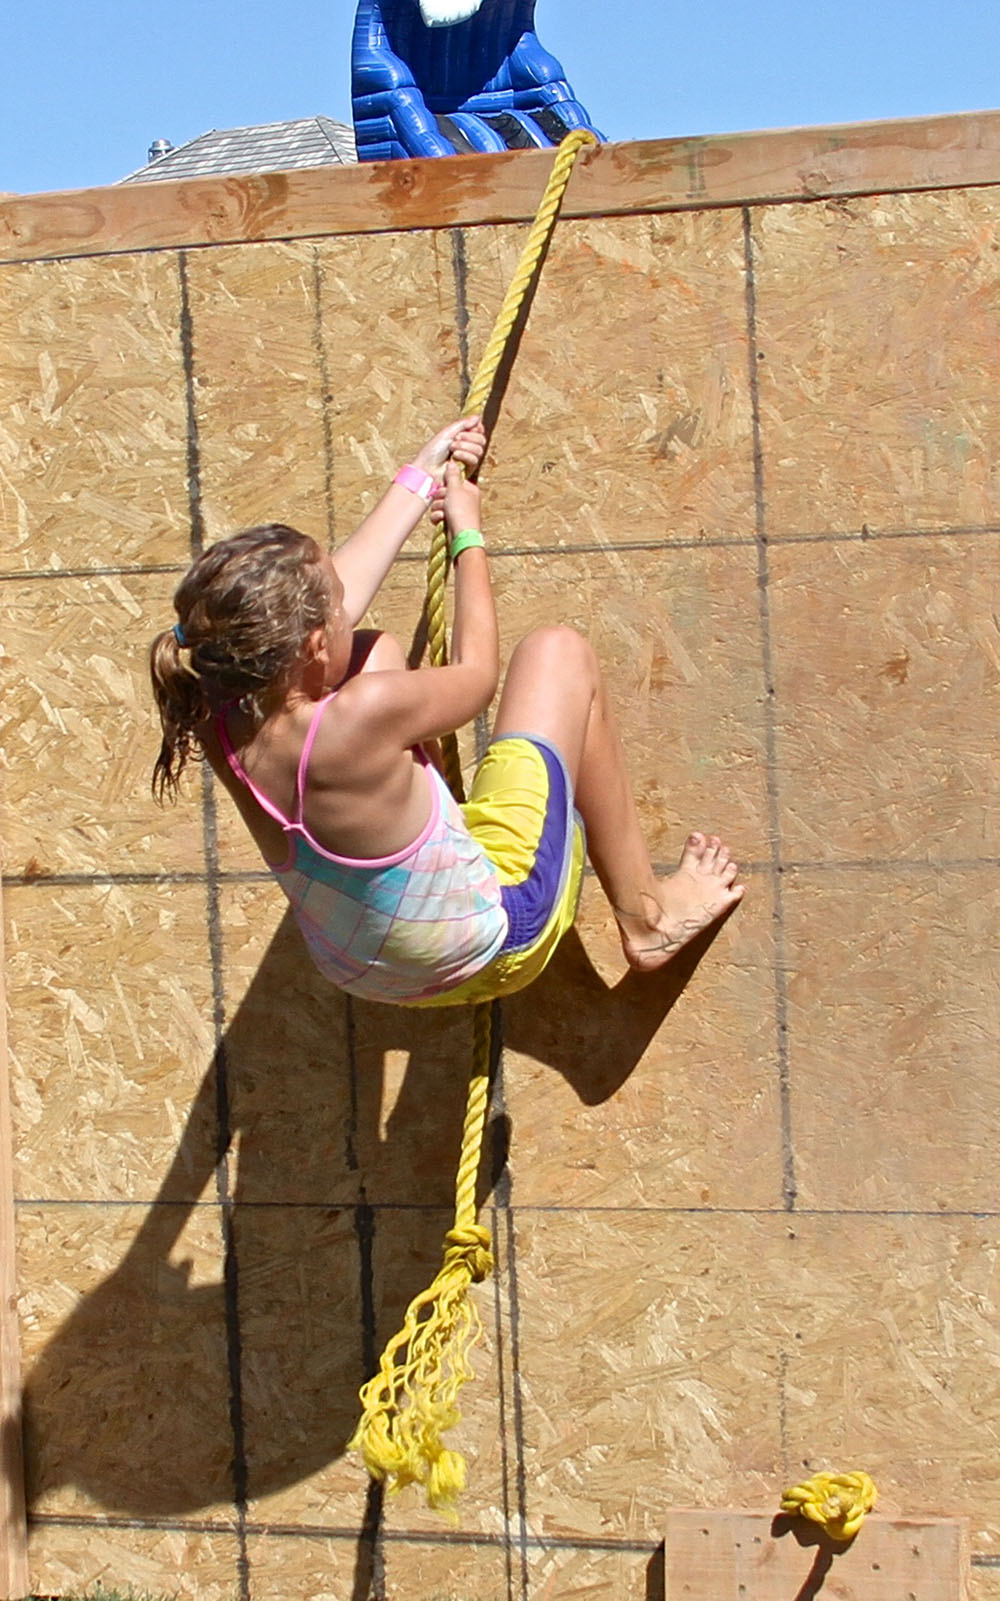 Girl climbs a wall during the Kids Adventure Challenge, St. George, Utah, October 3, 2014 | Photo courtesy of Kids Adventure Challenge, St. George News